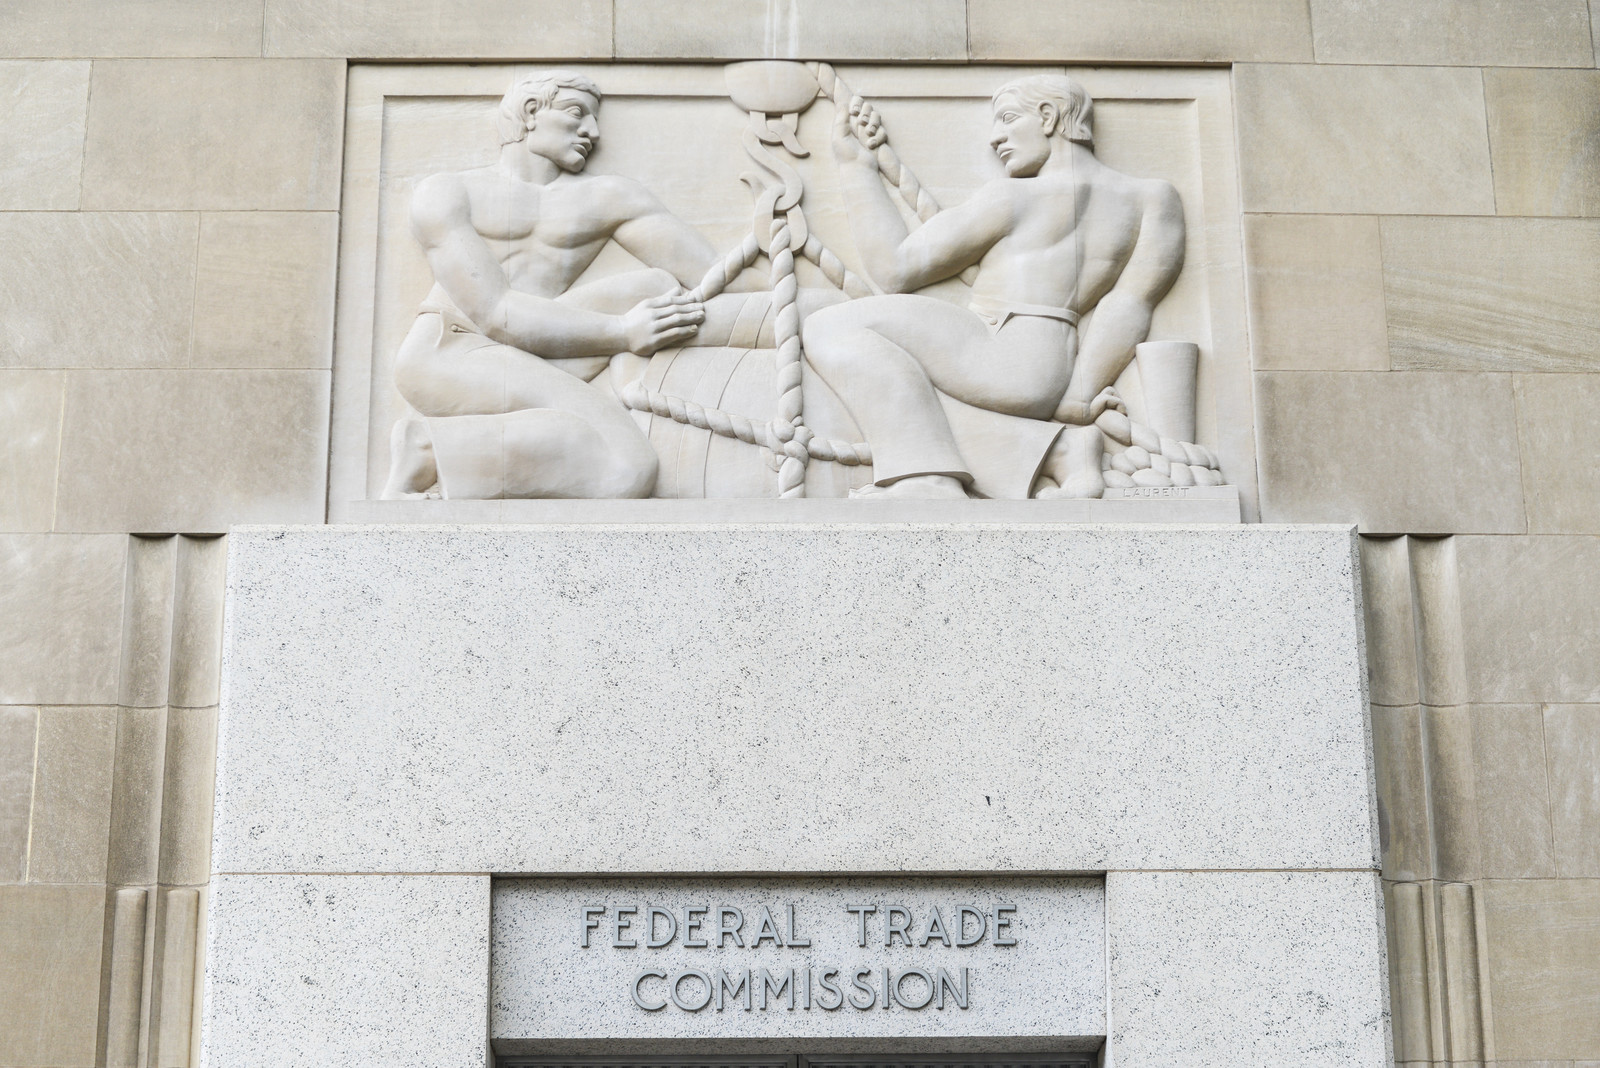 The front door of the Federal Trade Commission building in Washington DC.  With two men above carved out balancing a scale above the door